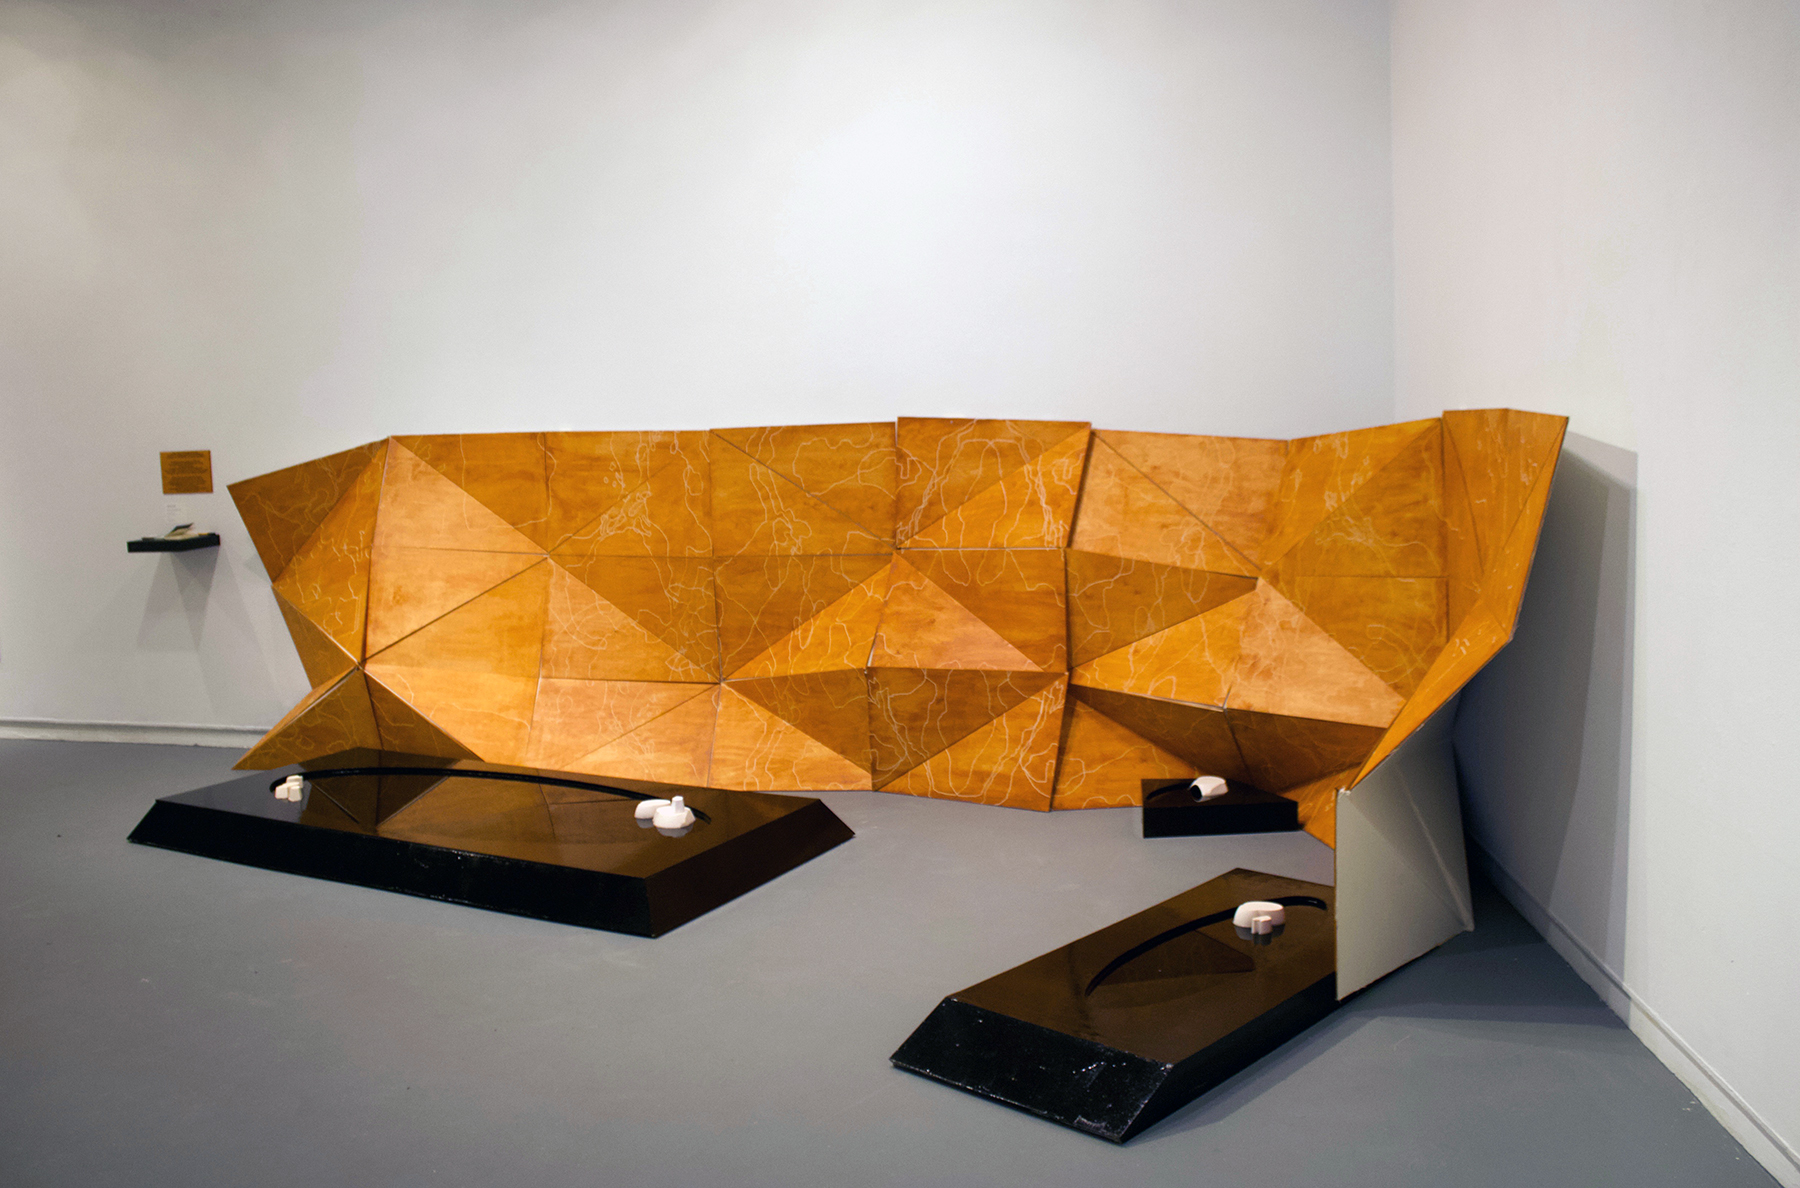 Kinetic wooden structure, comprised of triangle pieces and backed with canvas. On the floor are three black reflecting pools.